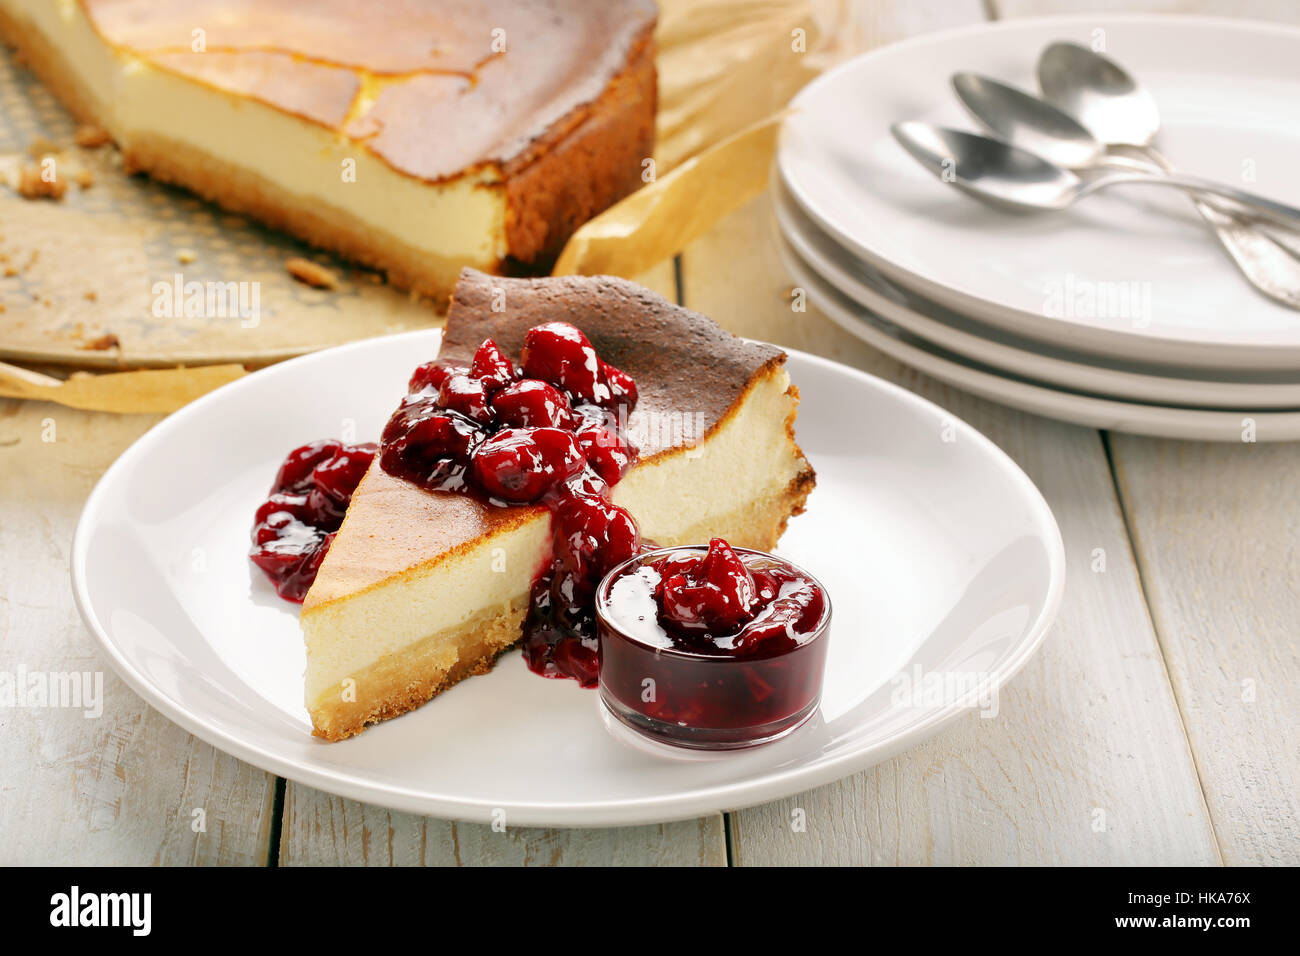 Cheesecake slice with cherry jam on wooden background Stock Photo